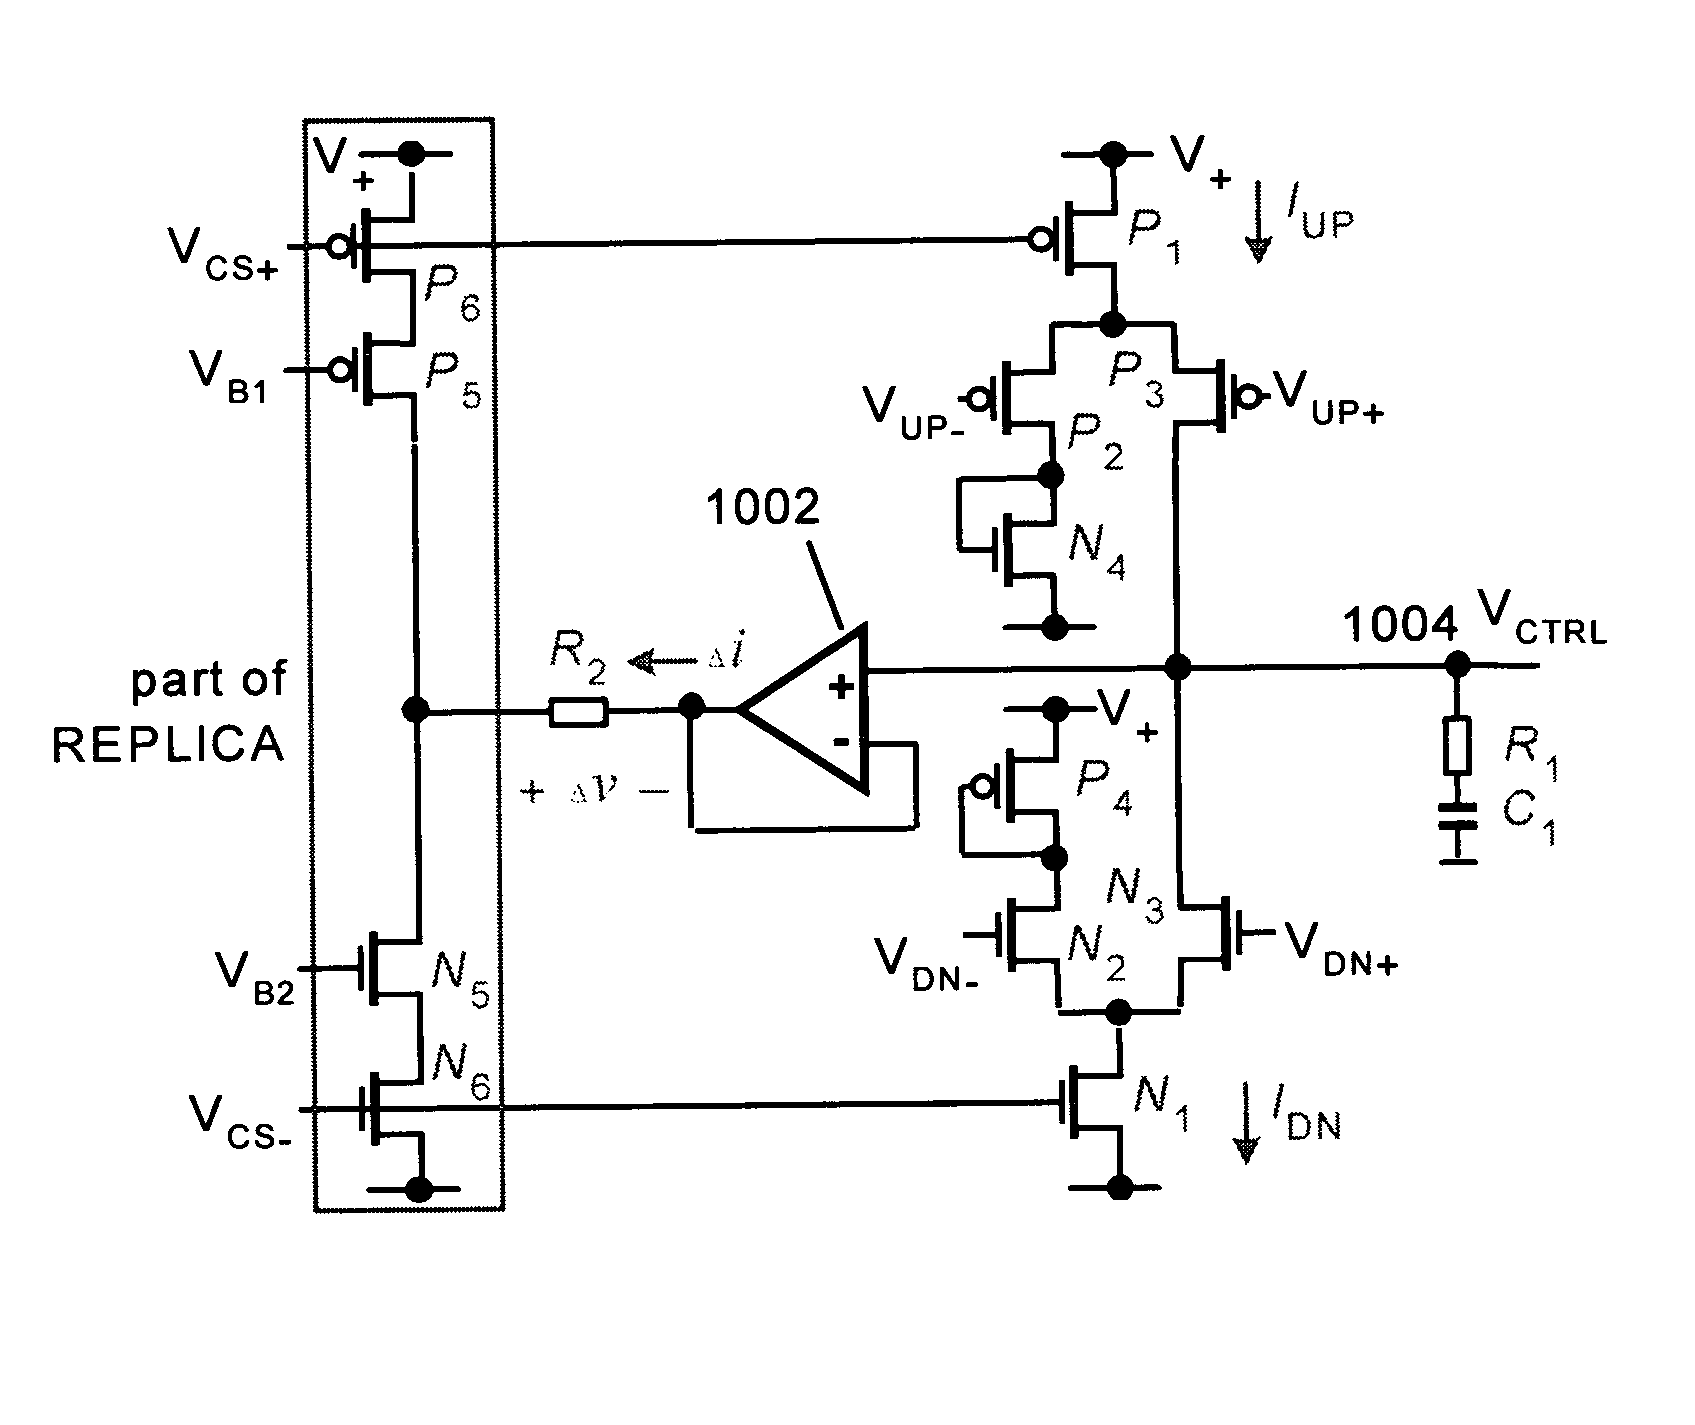 Analytics For Us Patent No 7382849 Charge Pump Circuit Rc Circuits Charging Coupled To The Core Minimize Difference Between Up And Down Currents Generated By